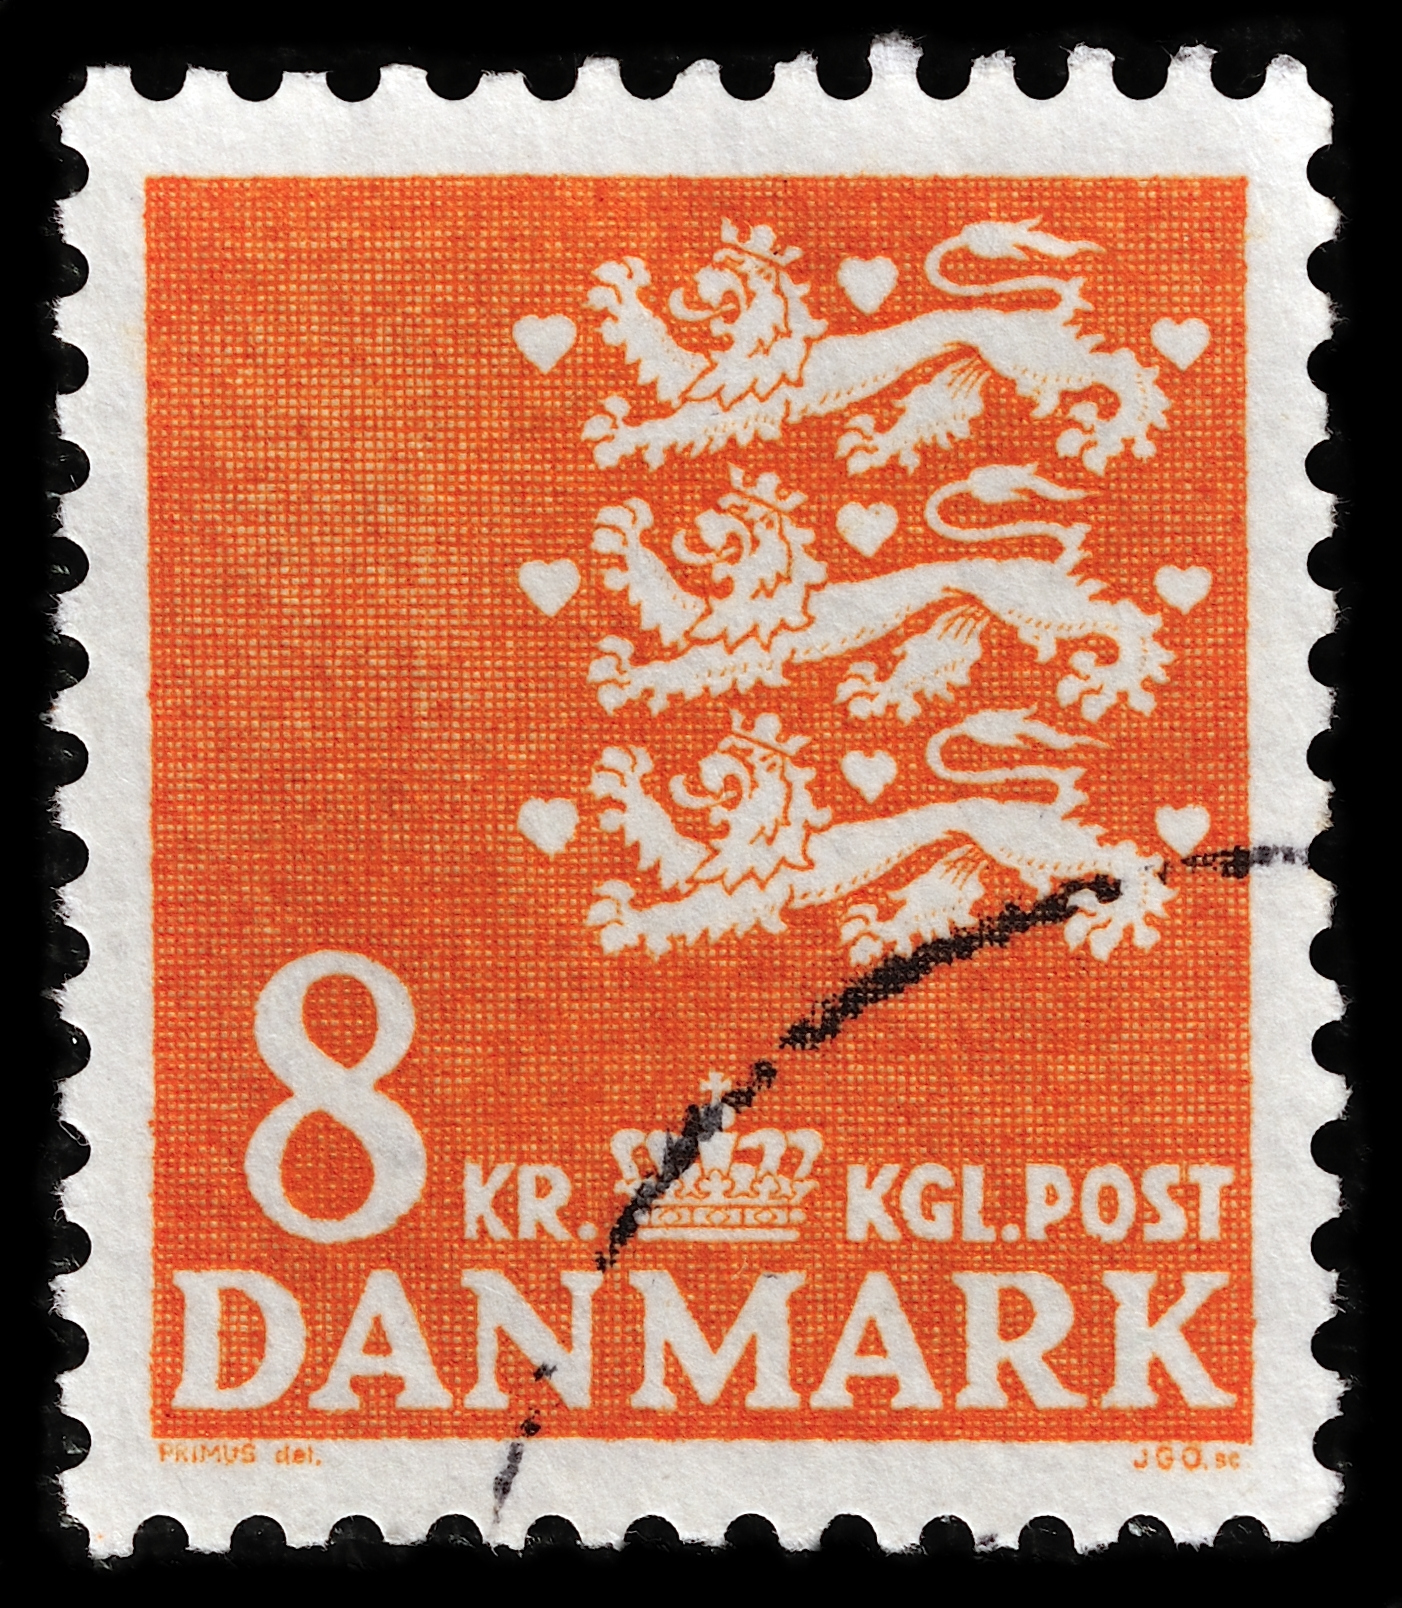 Slide 66 of 70: Stockholm, Sweden - February 11, 2013: DENMARK-CIRCA 1946: A stamp printed in Denmark shows image of the Small national coat of arms of Denmark (three crowned lions and nine hearts), without inscriptions, series 'Coat of arm', circa 1946.